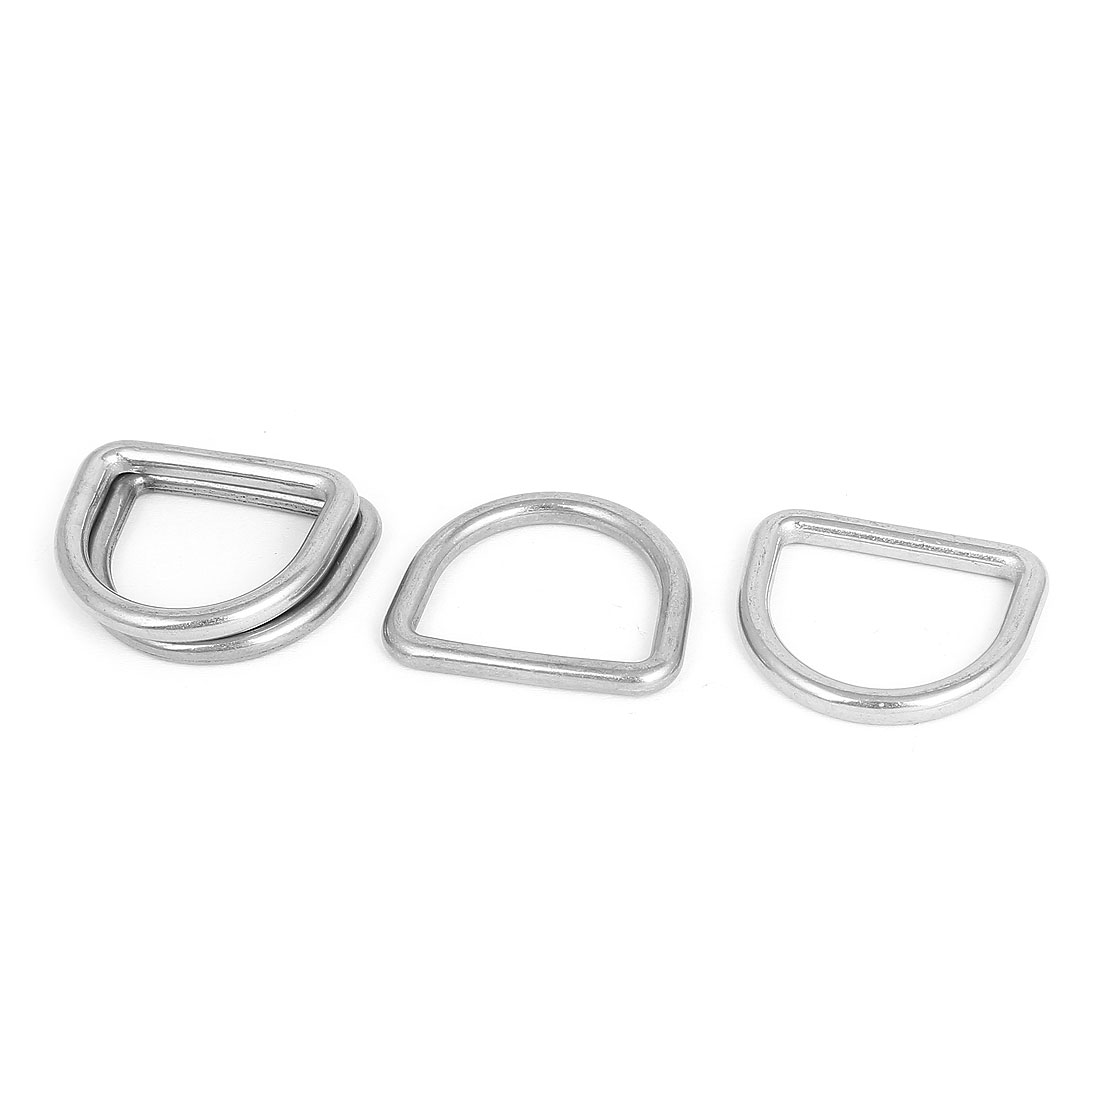 Stainless Steel D-Shaped Hooks D Ring Belt Buckles 4 Pcs for Handbag